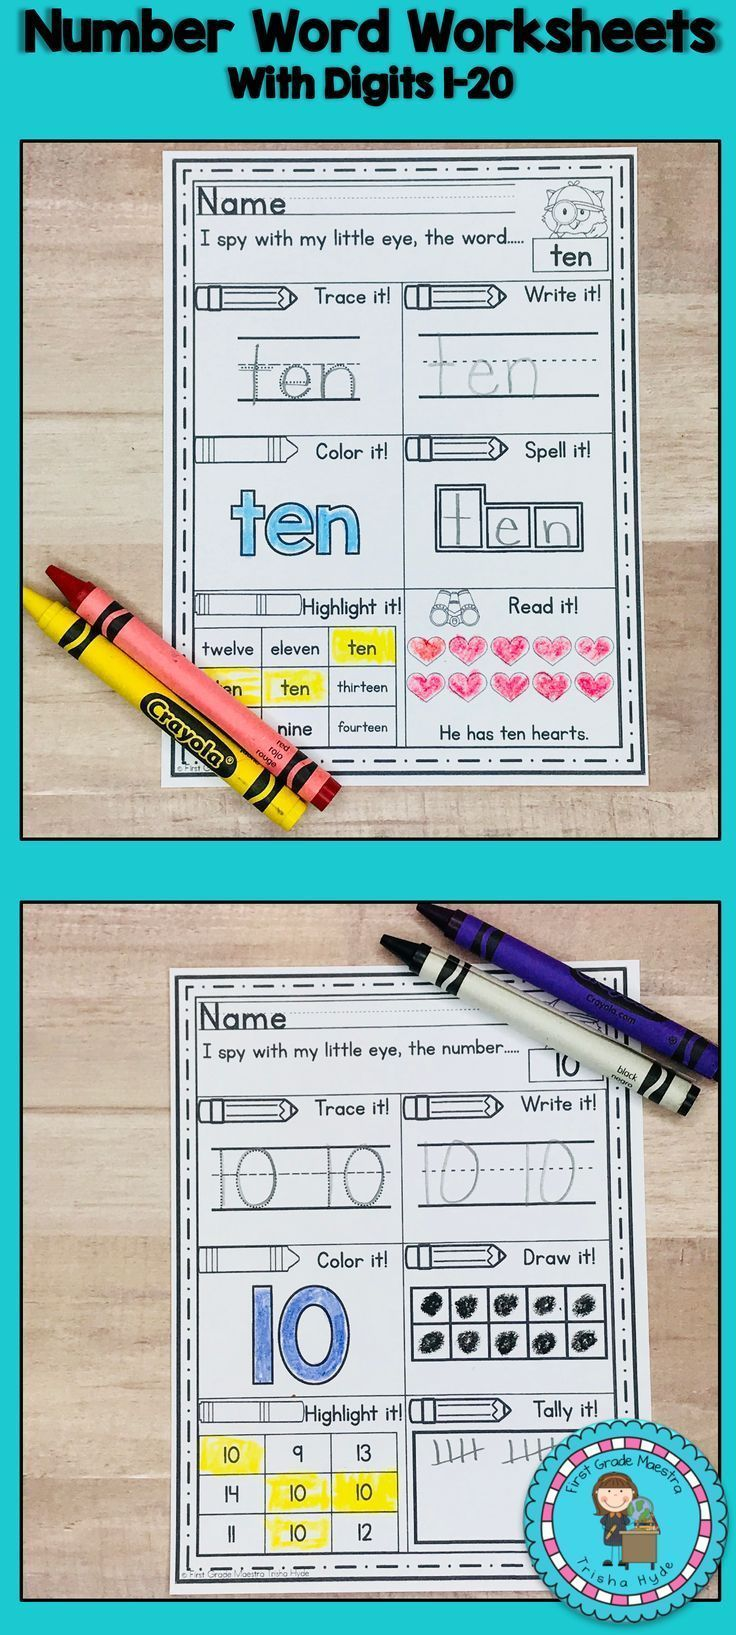 Number Words and Digits Worksheets | First Grade Maestra May ...